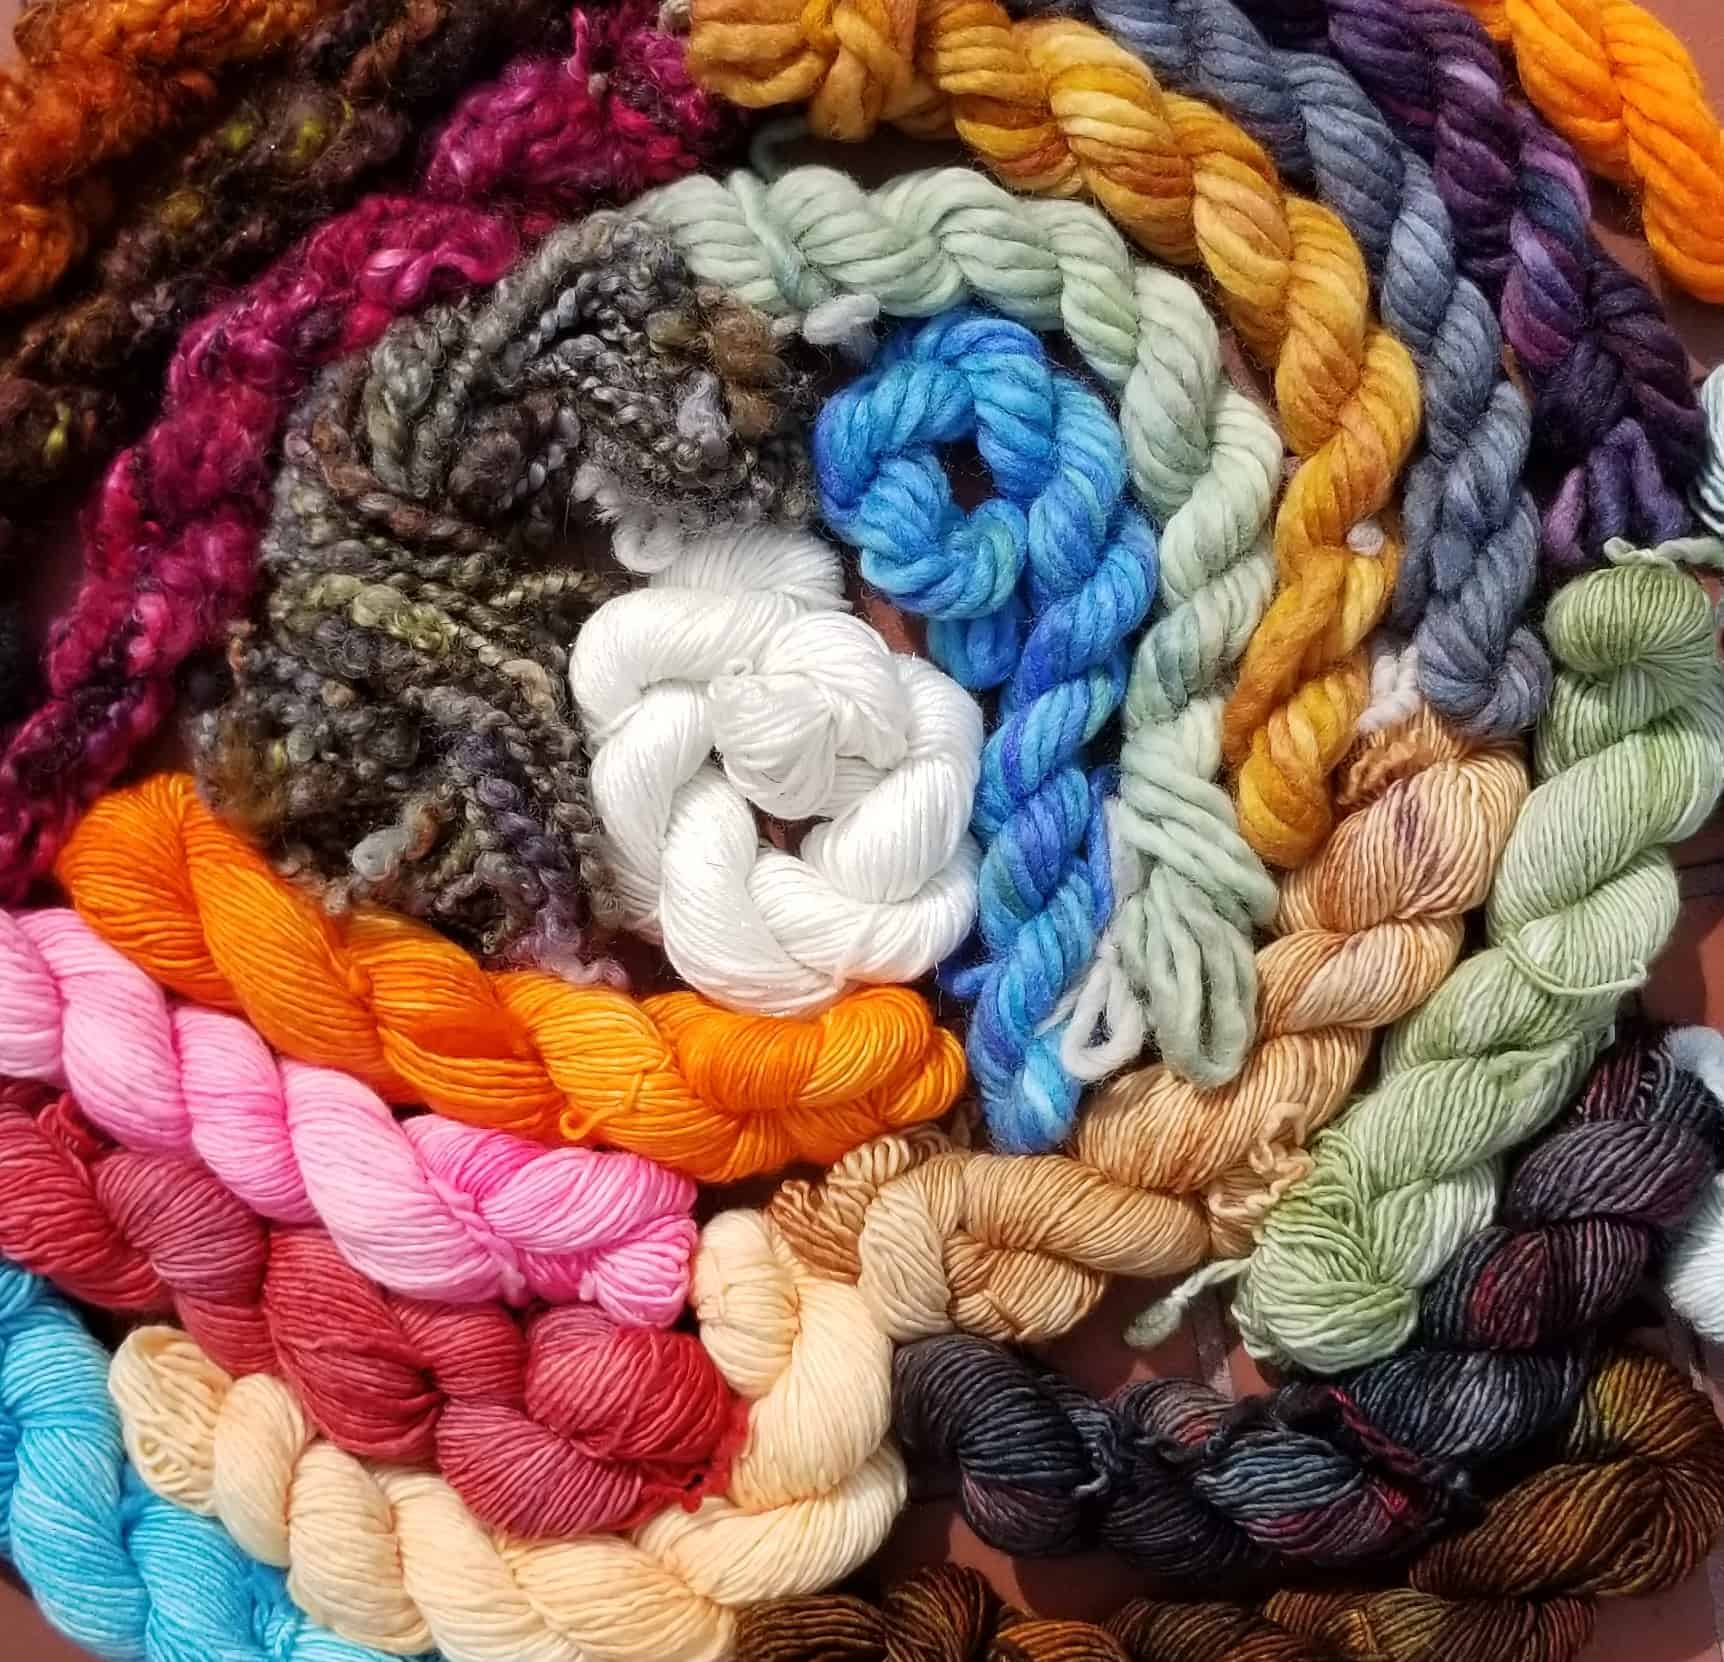 A spiral of brightly colored hanks of yarn.